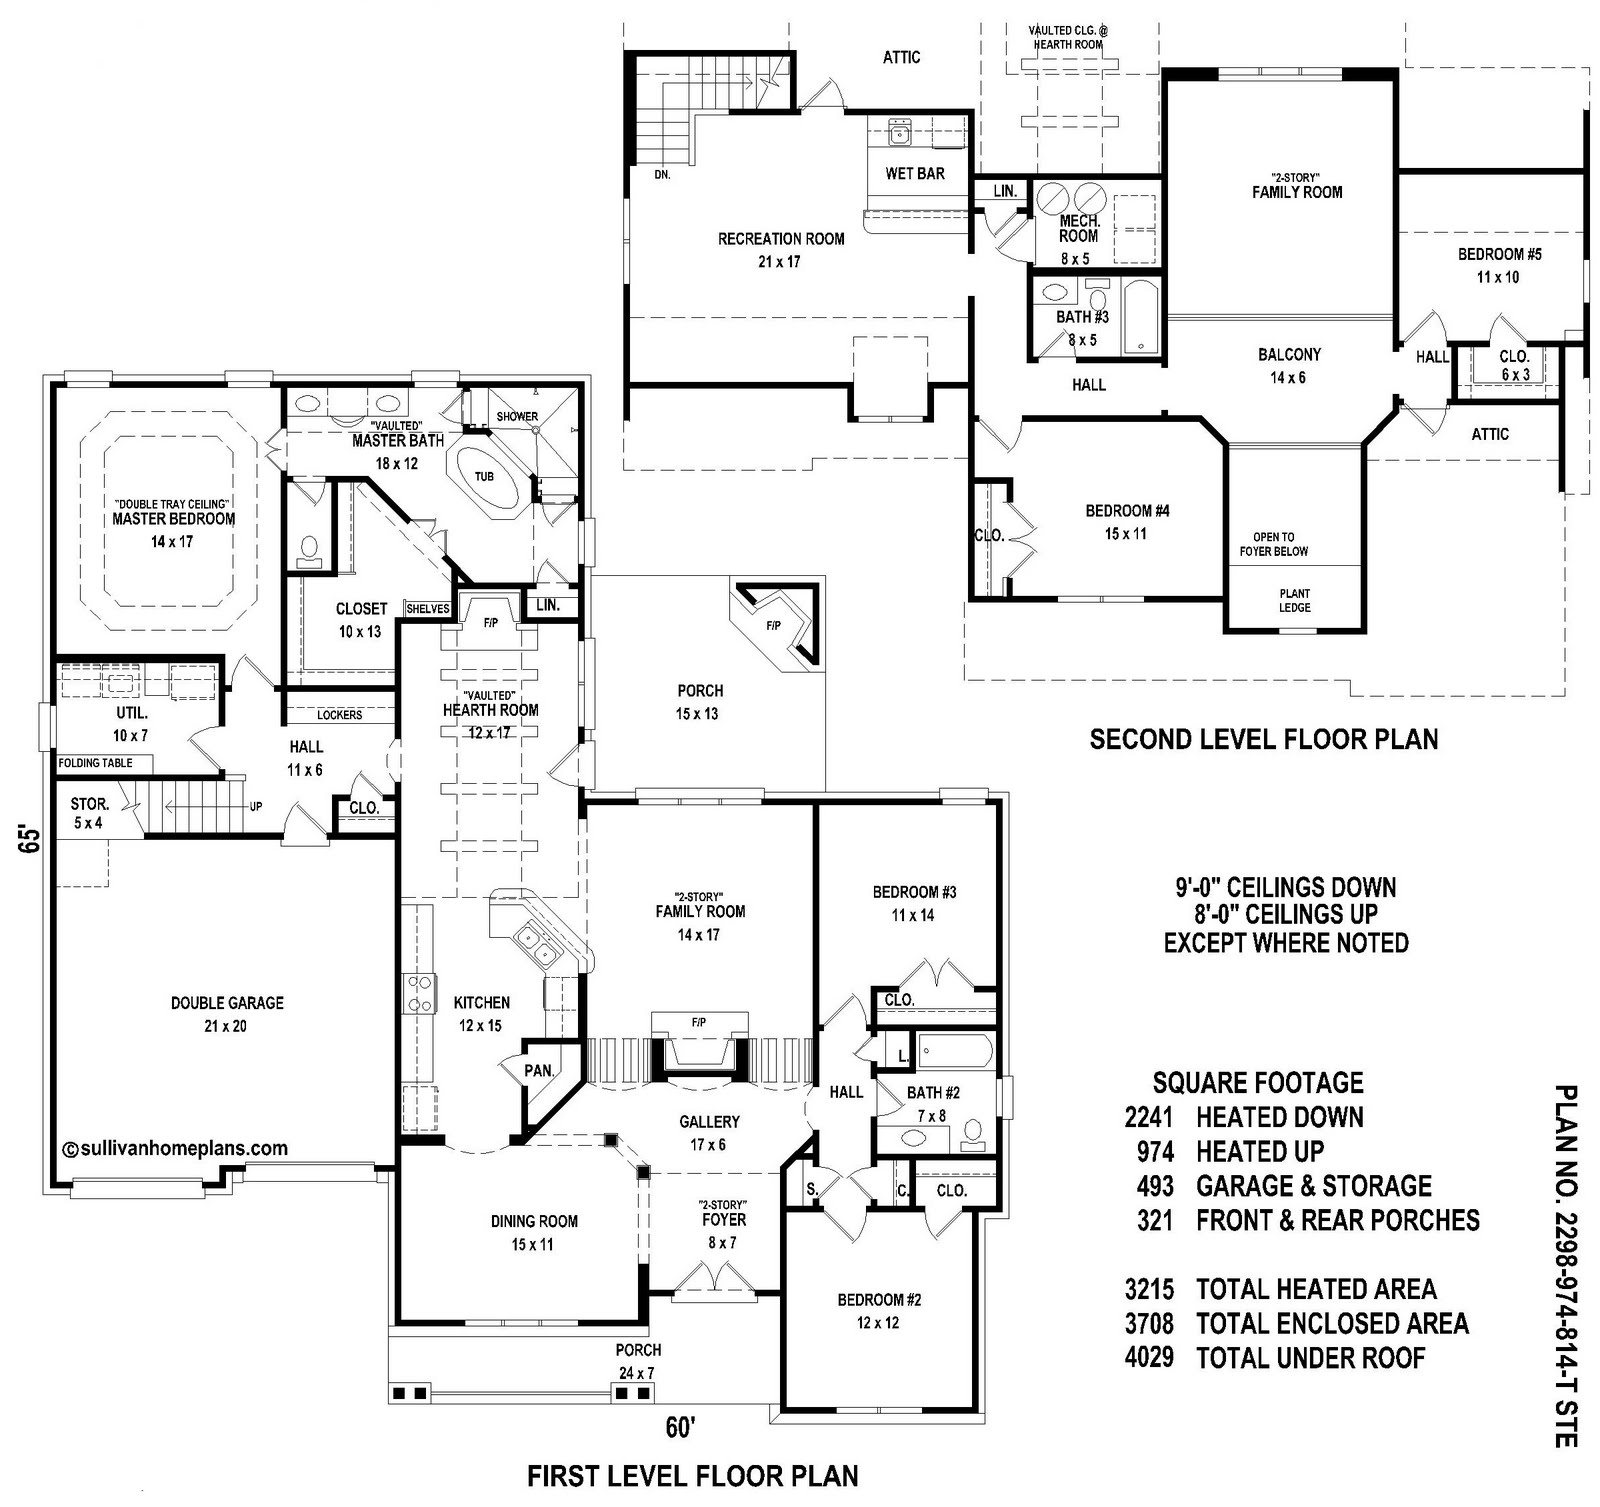 Sullivan home plans june 2010 for 5 bedroom floor plan designs